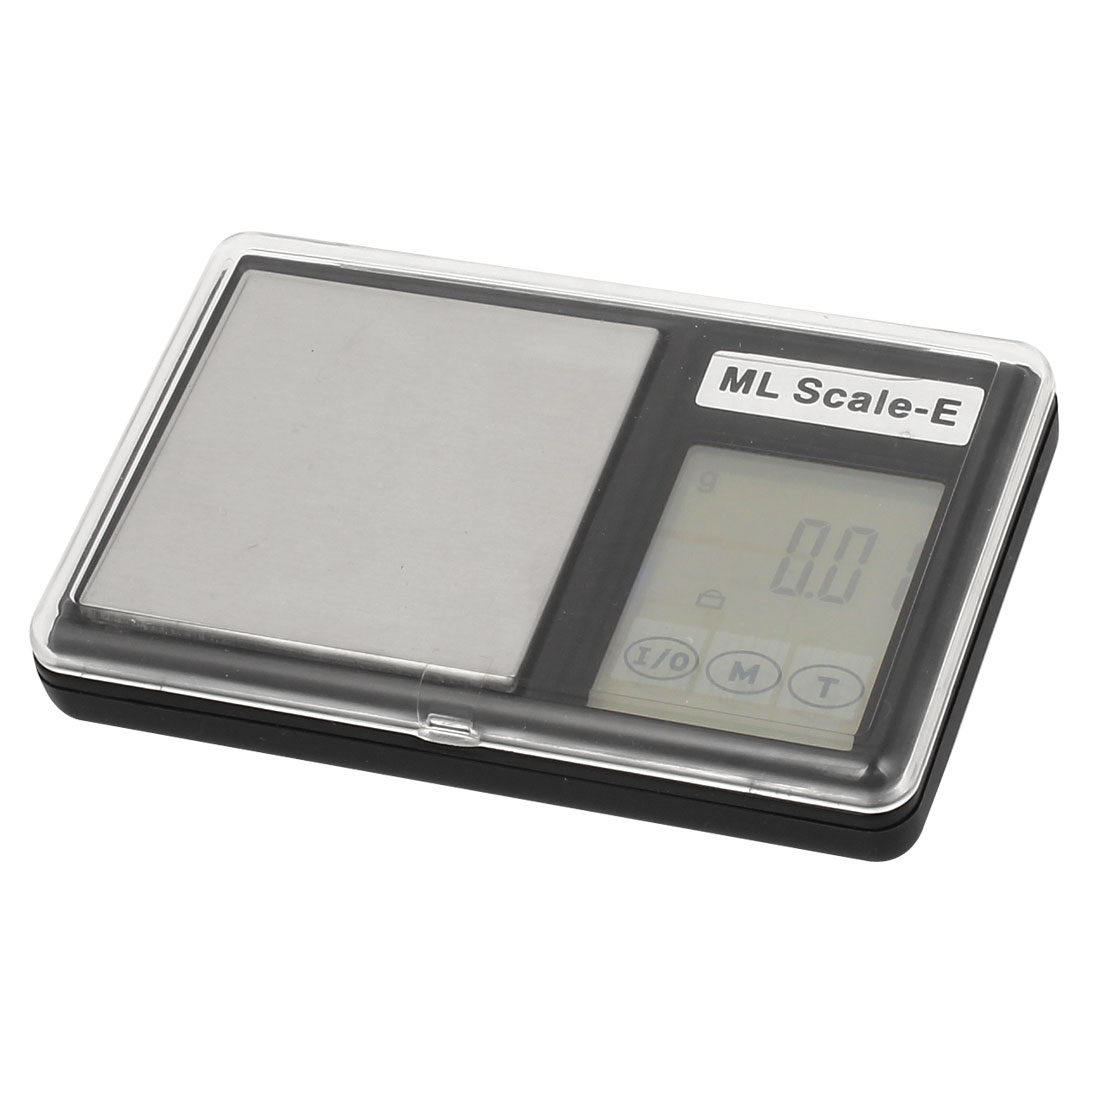 Clear Cover 0.01g x 100g Jewelry Weight Balance Digital Pocket Scale Black